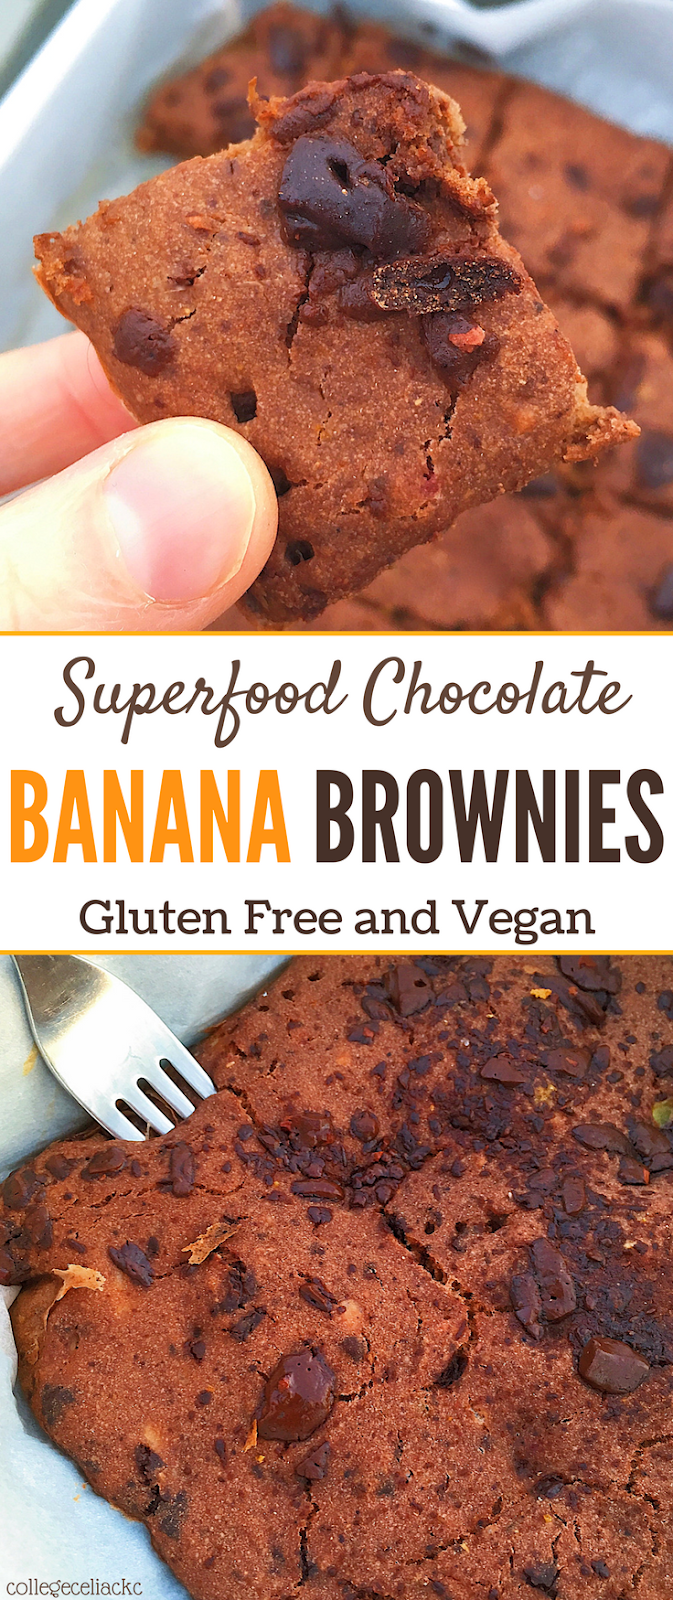 Superfood Chocolate Banana Brownies (Gluten Free, Vegan, Oil Free)